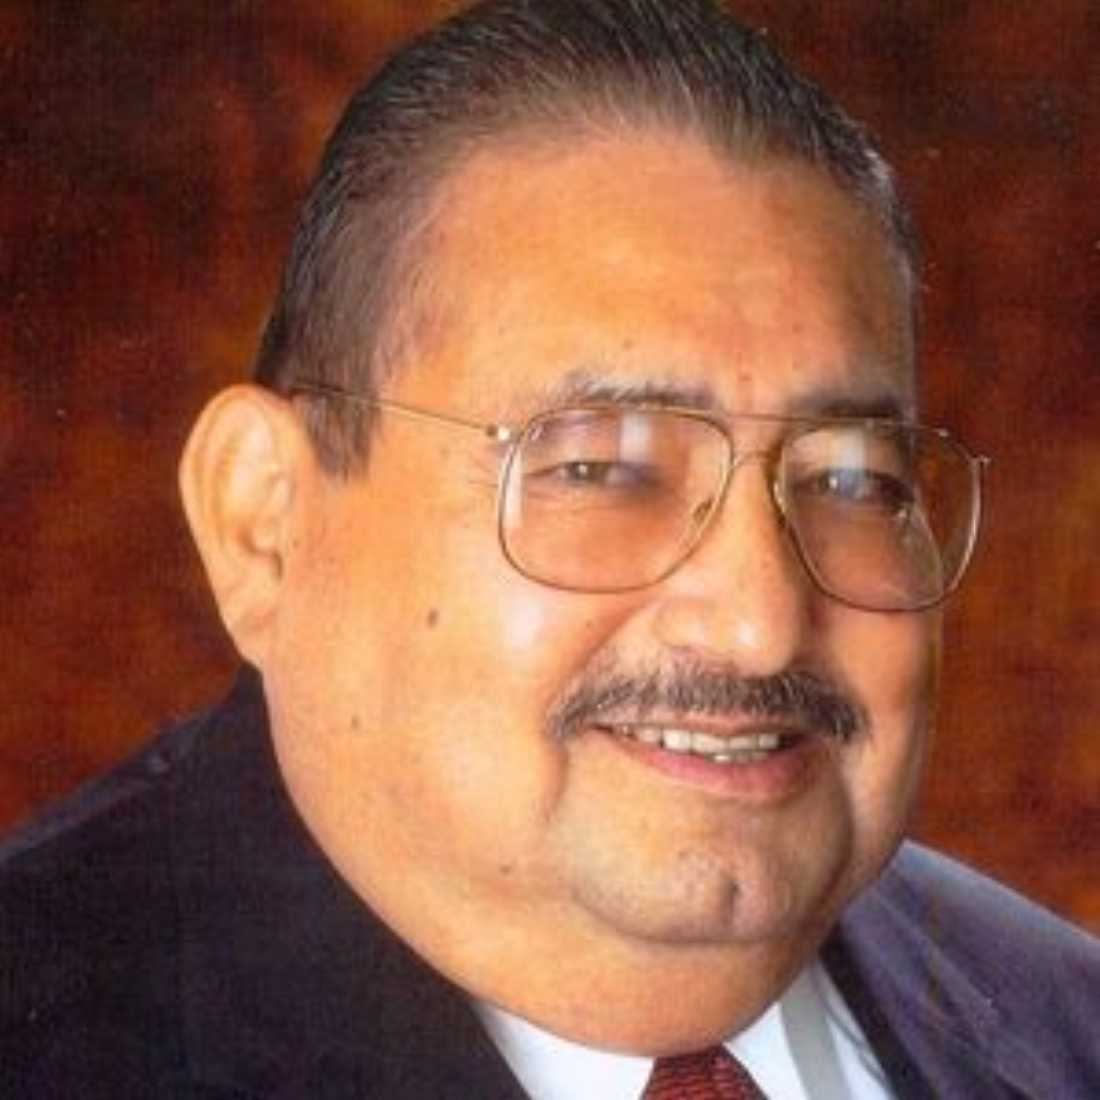 Former Fort Worth City Council member Louis Zapata died on April 4 after a long illness. He was 79.